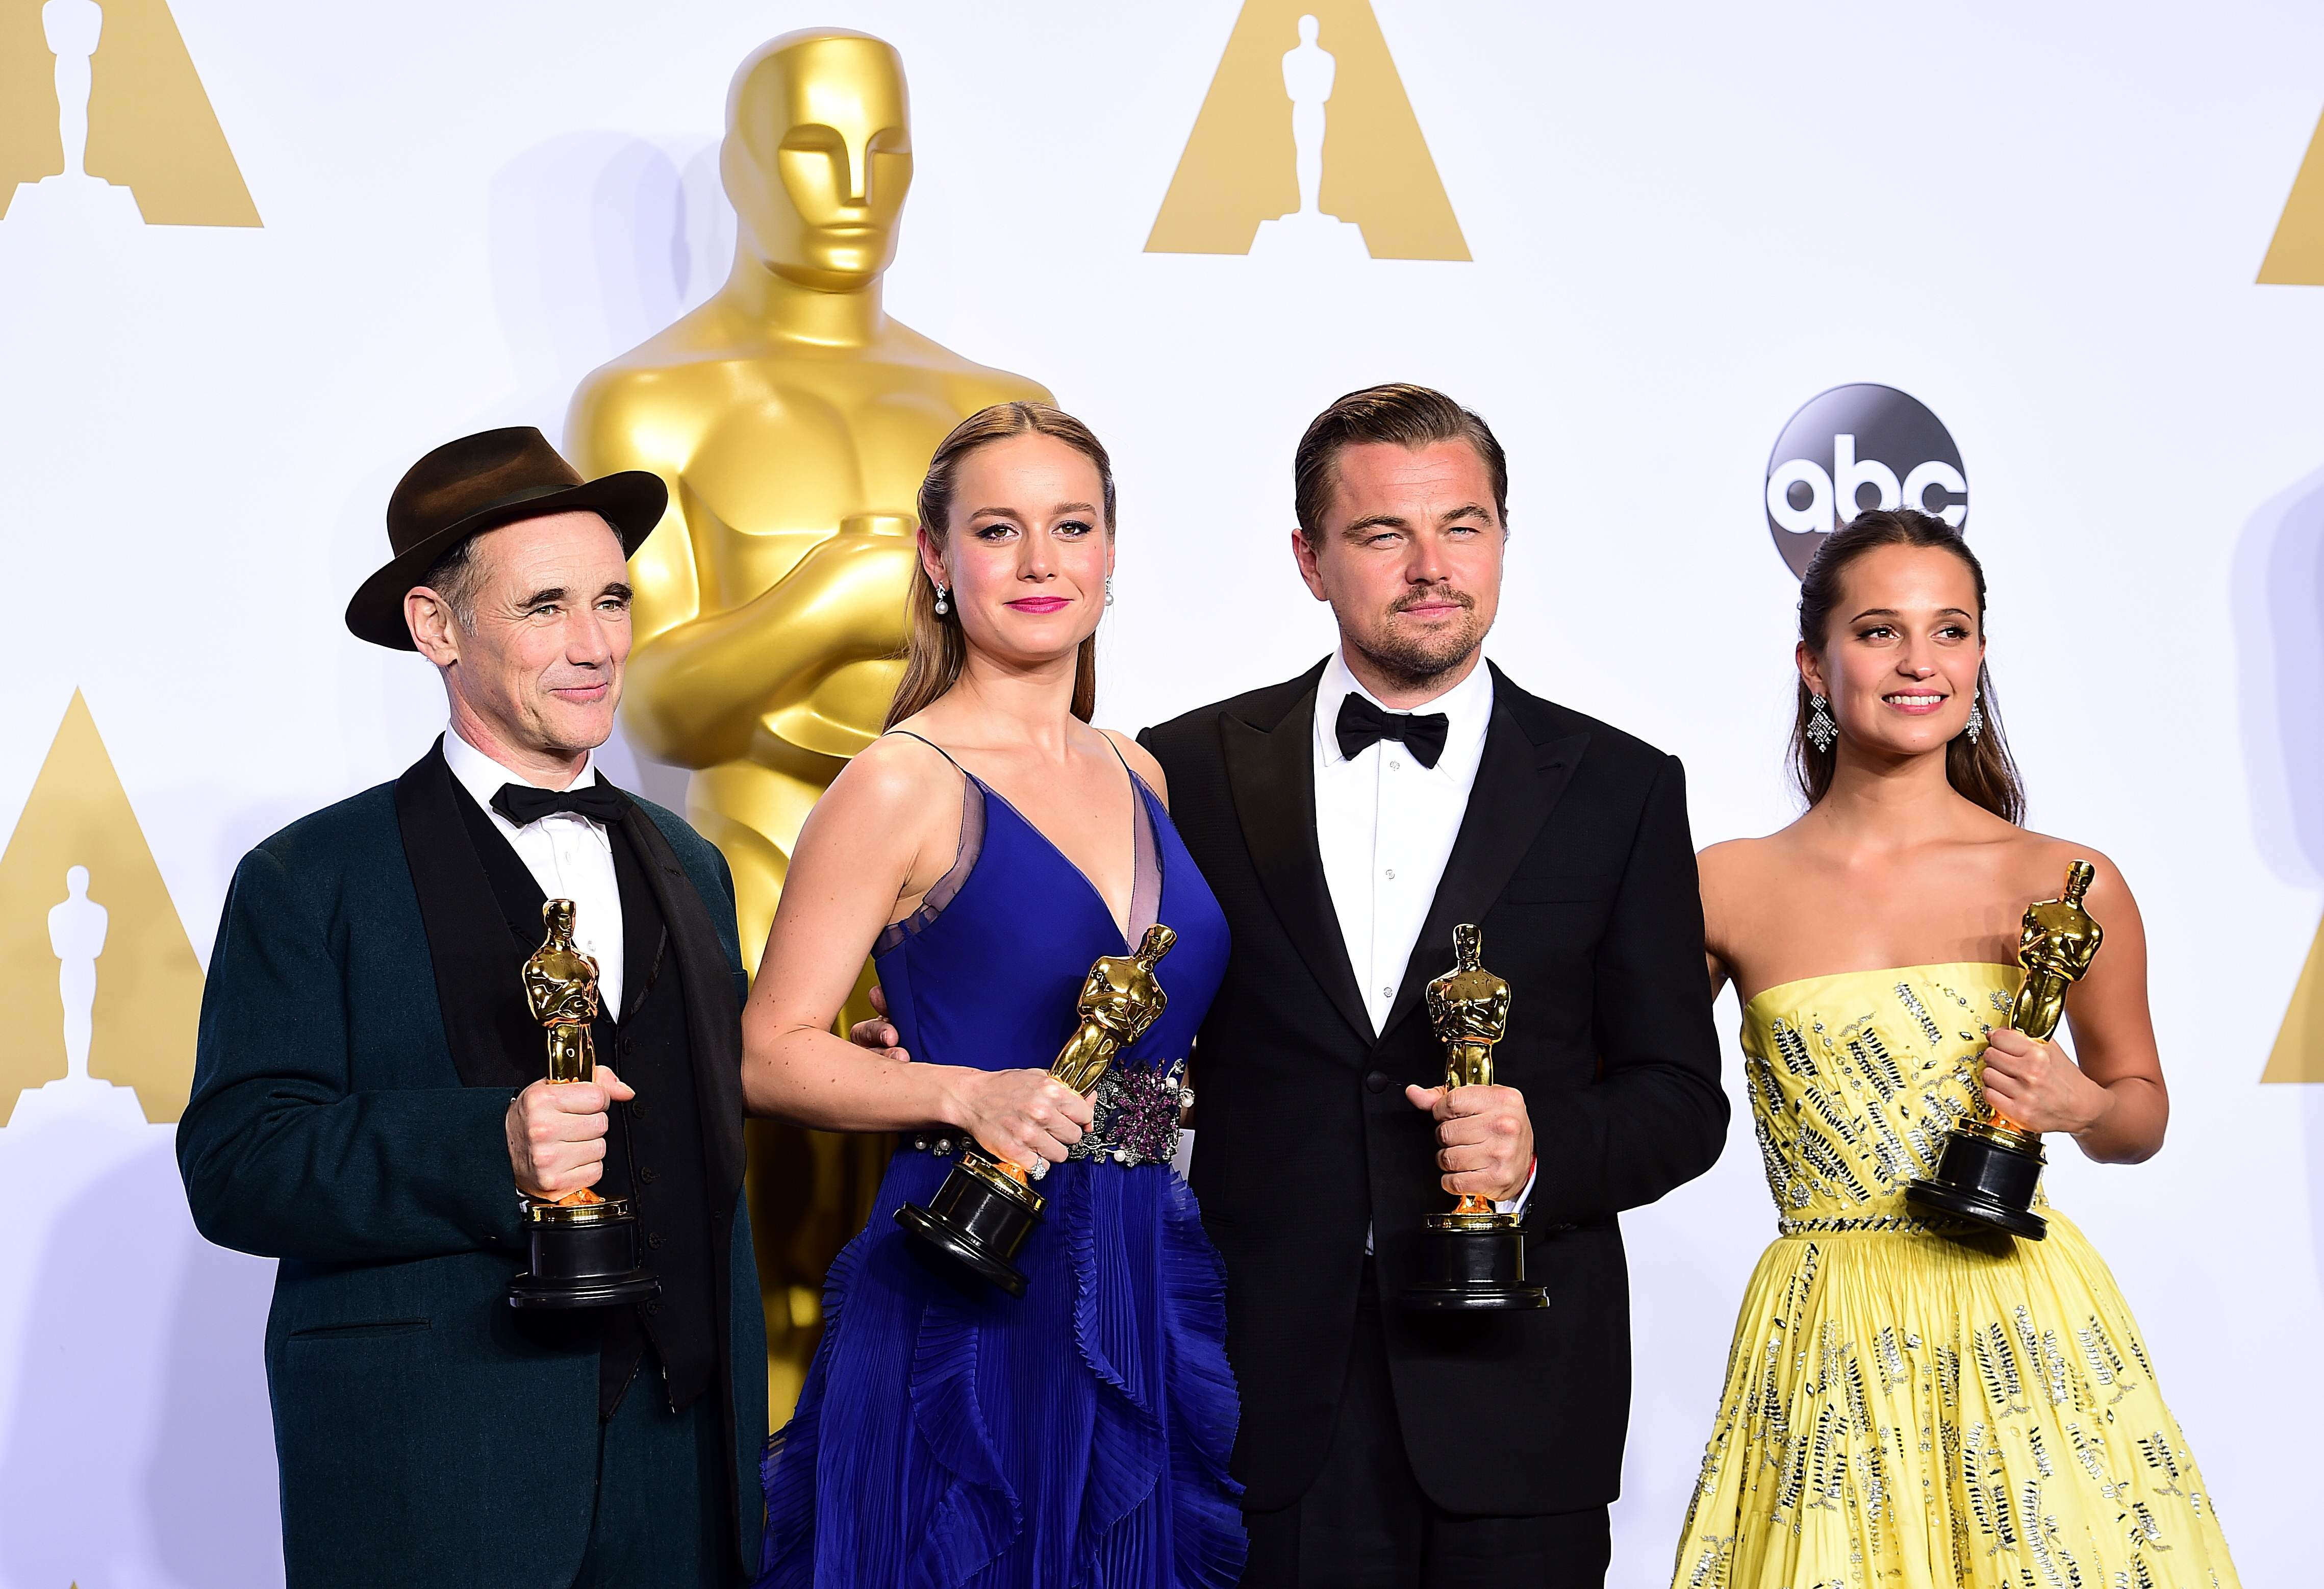 Heres How The Internet Reacted To Last Nights Oscars PA 25675286